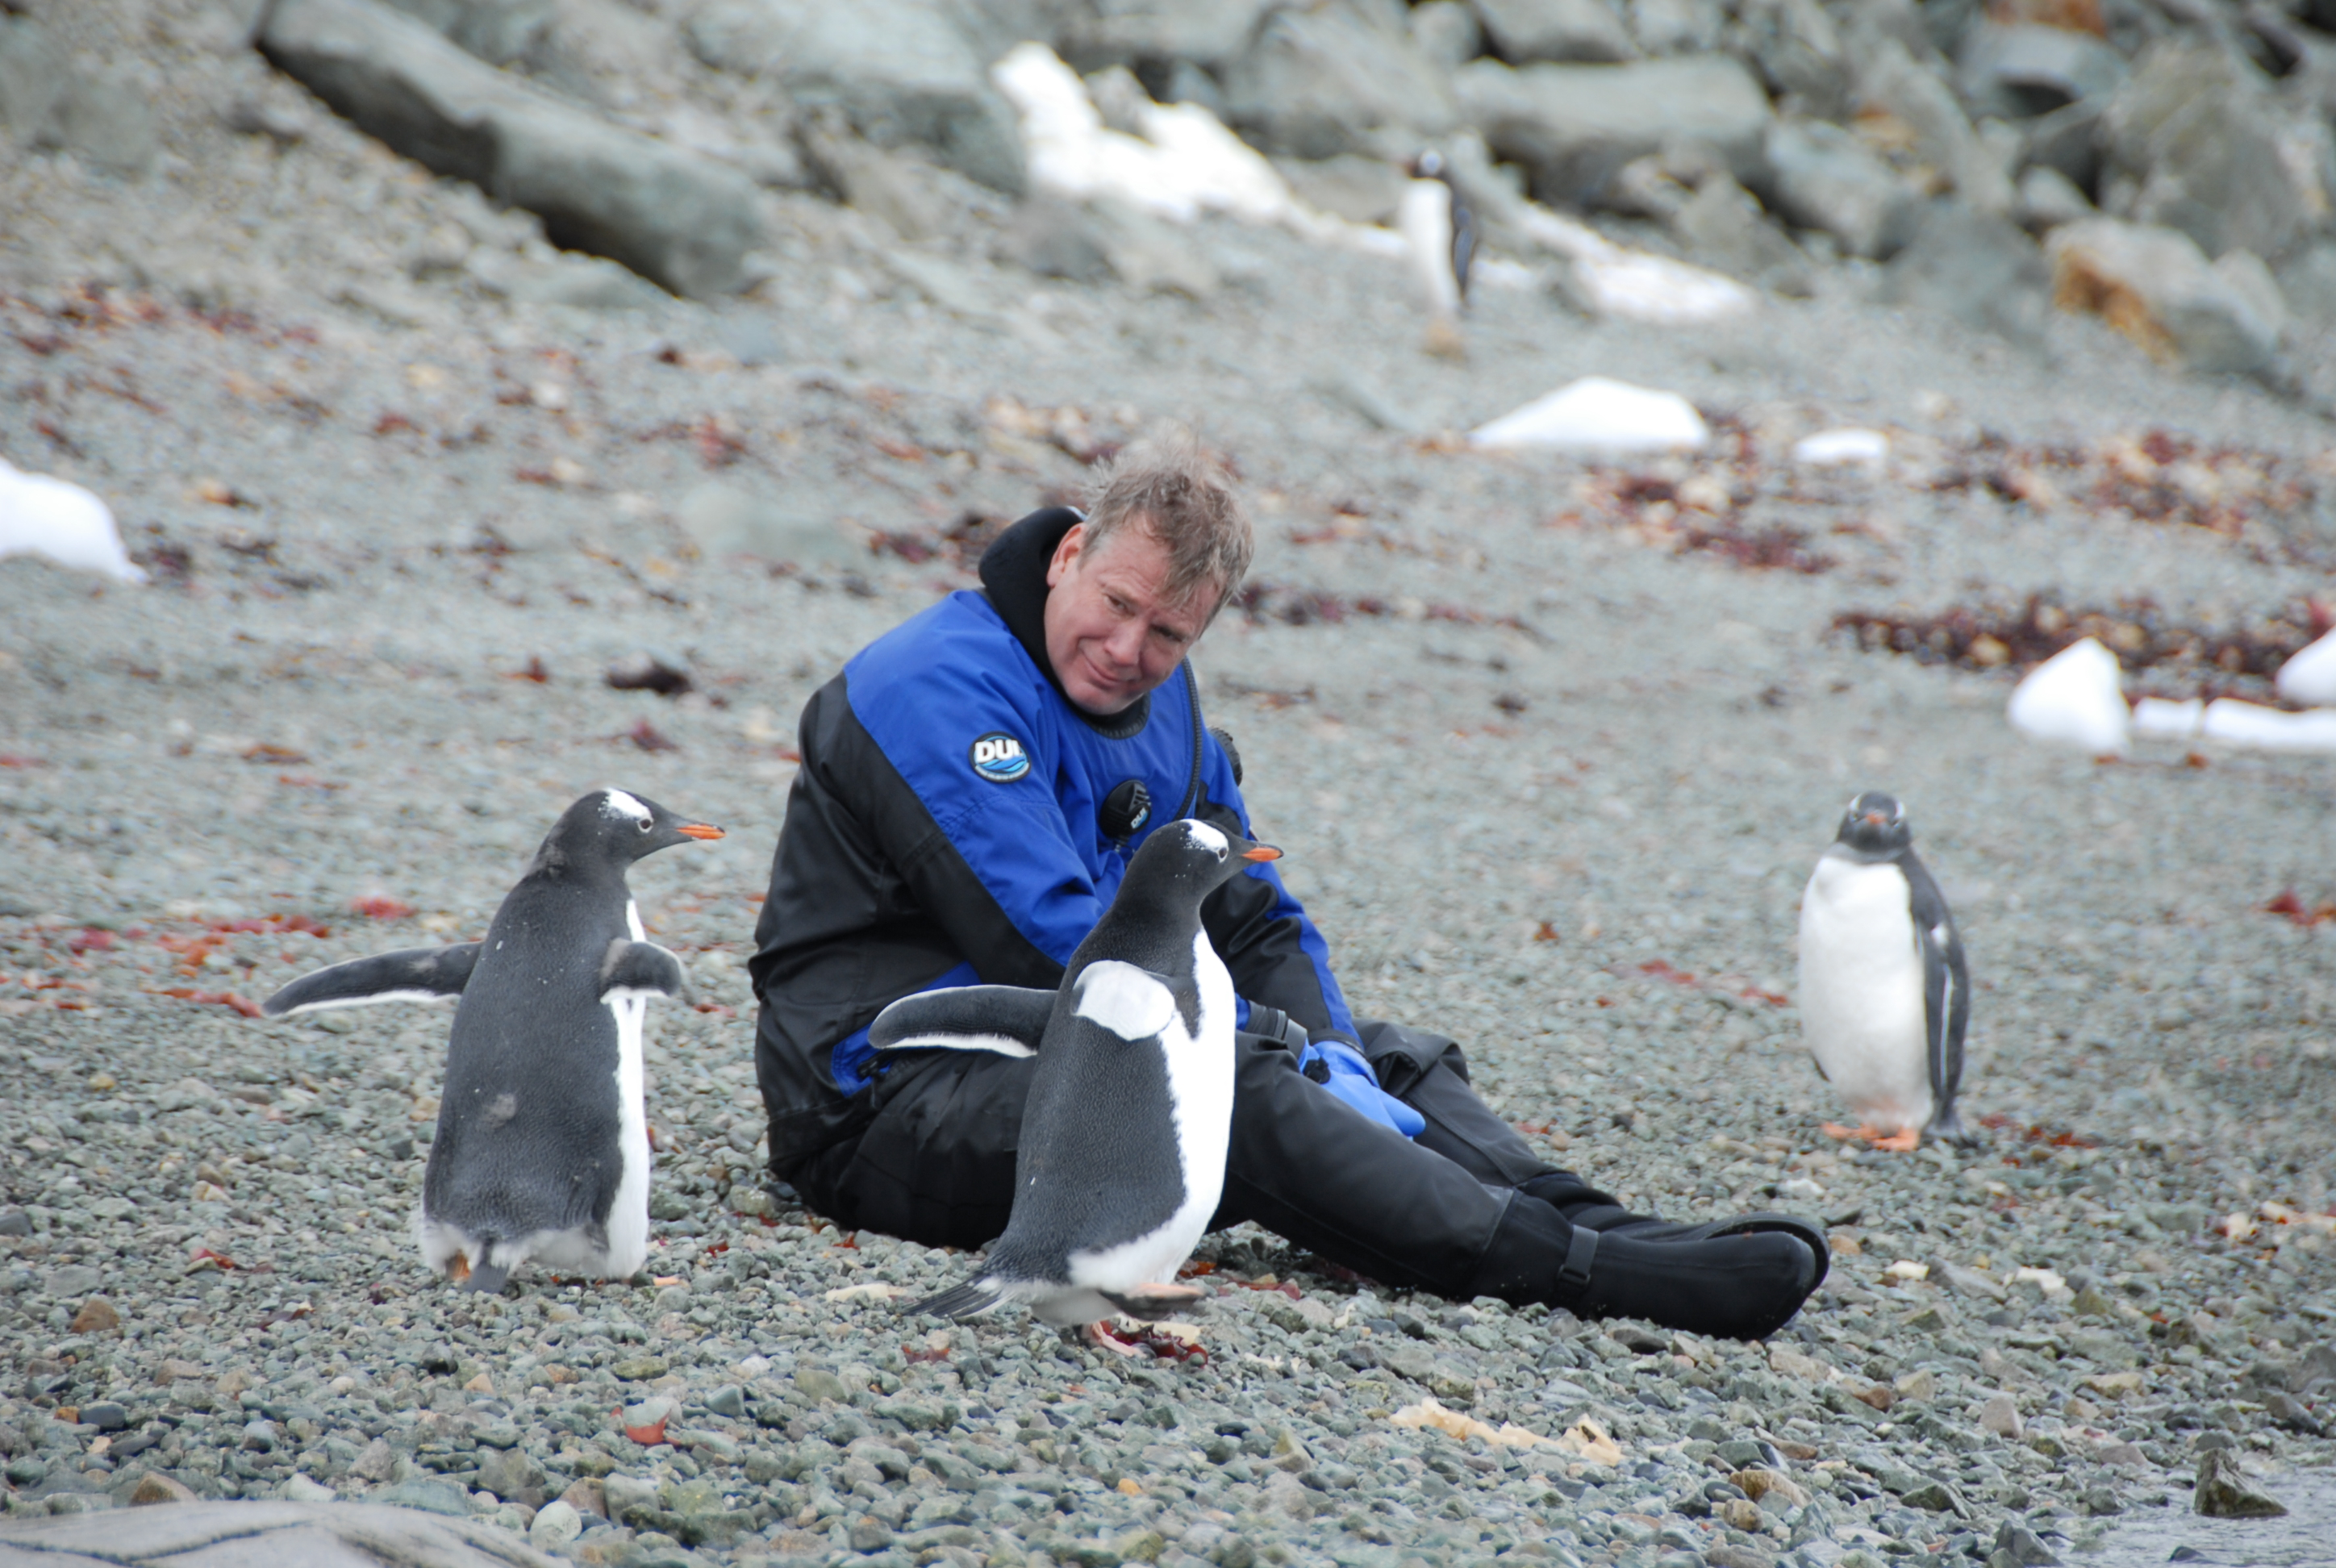 Antarctica - Diver in a drysuit surrounded by penguins on land